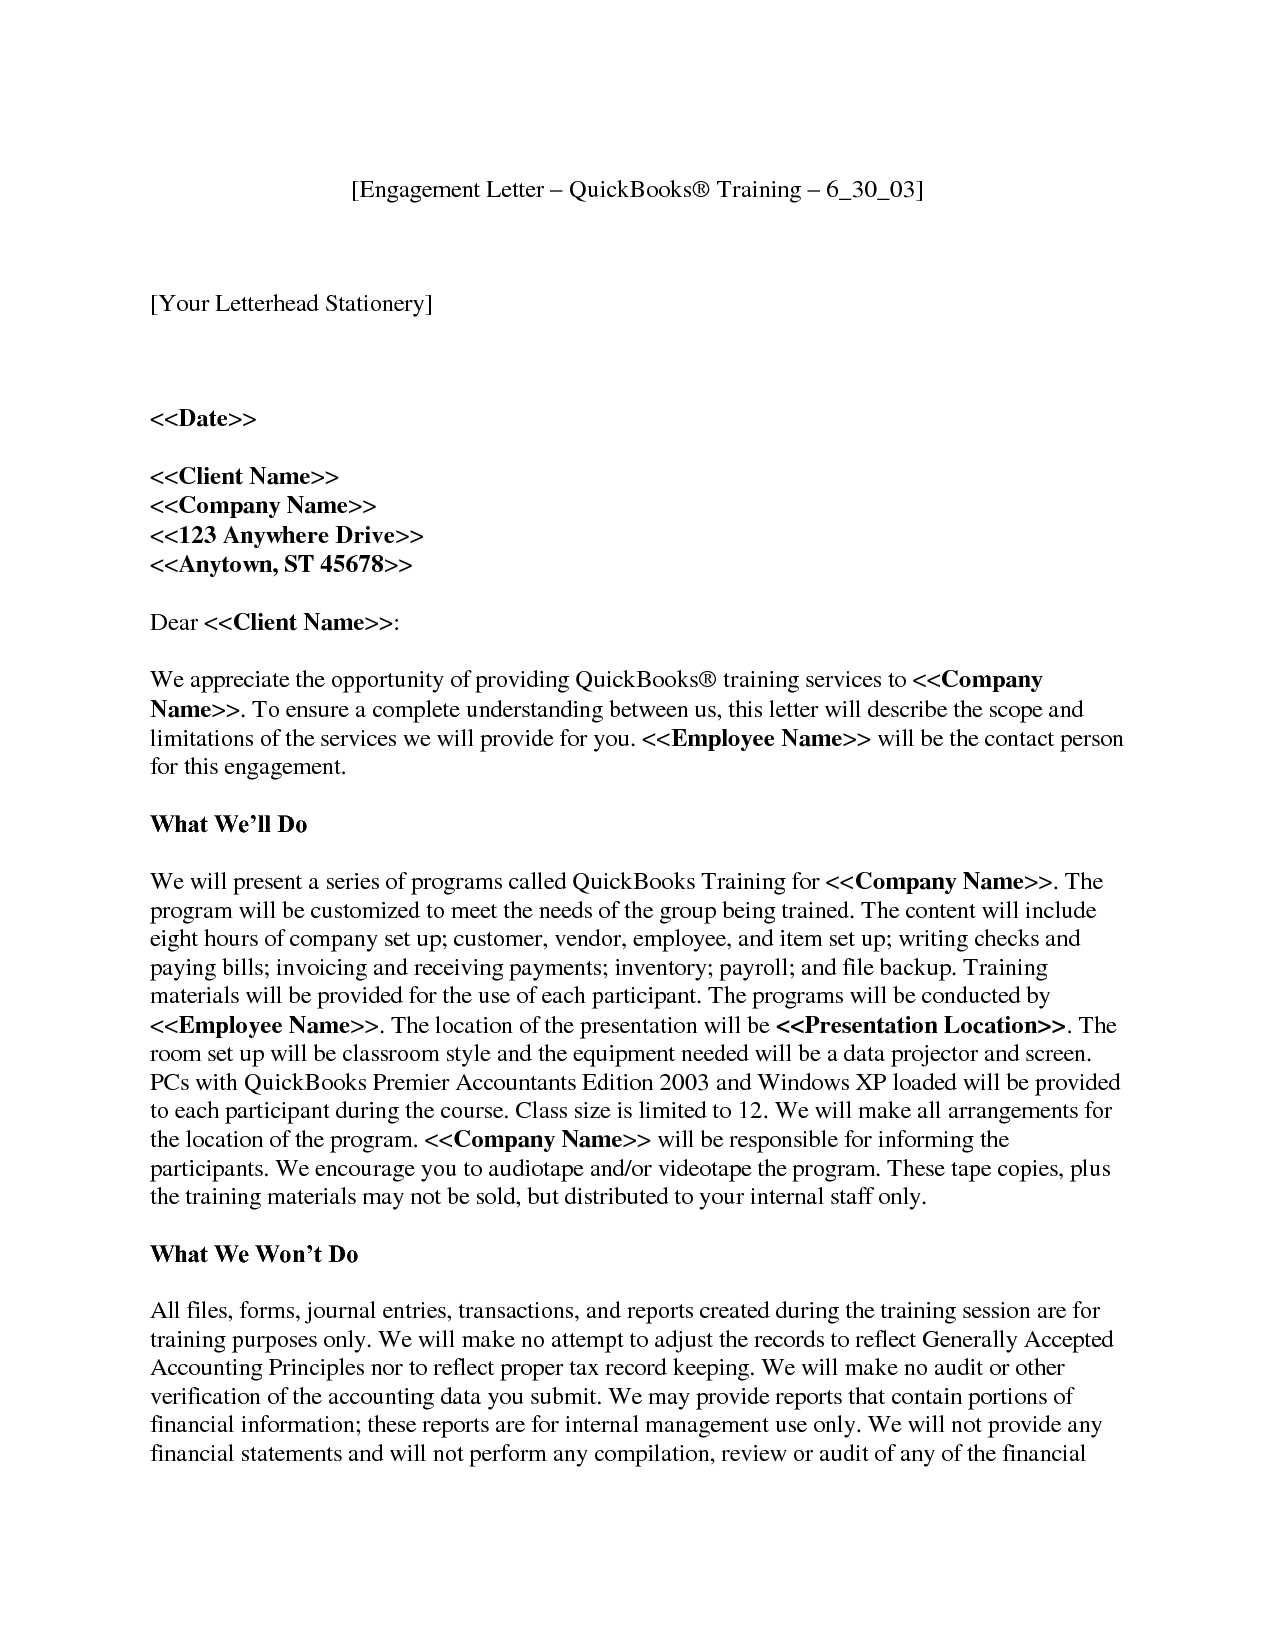 Tax Preparation Engagement Letter Template - How to Write A Letter Engagement Gallery Letter format formal